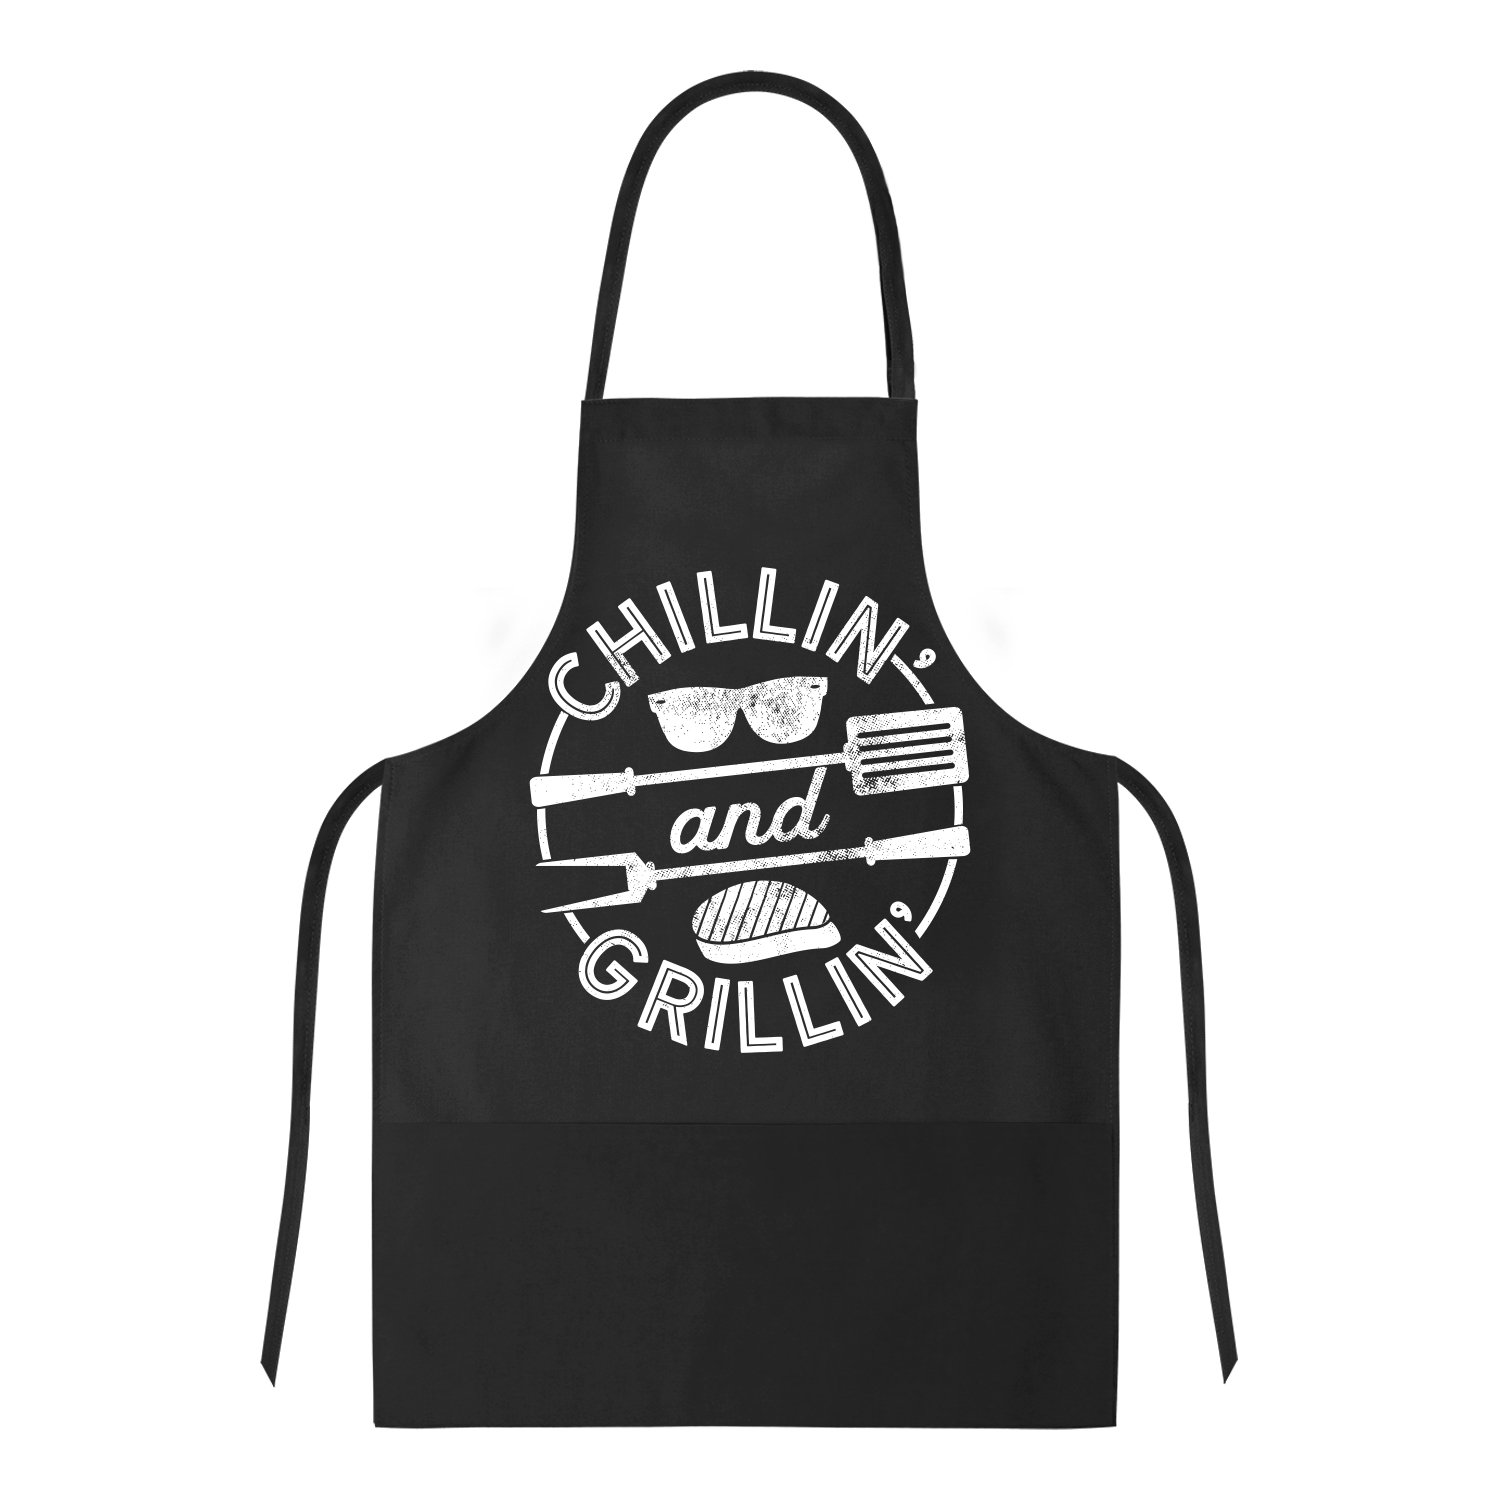 Cookout Apron Chillin And Grillin Tshirt Funny Outdoor Summer BBQ Smock For Guys-ONE SIZE